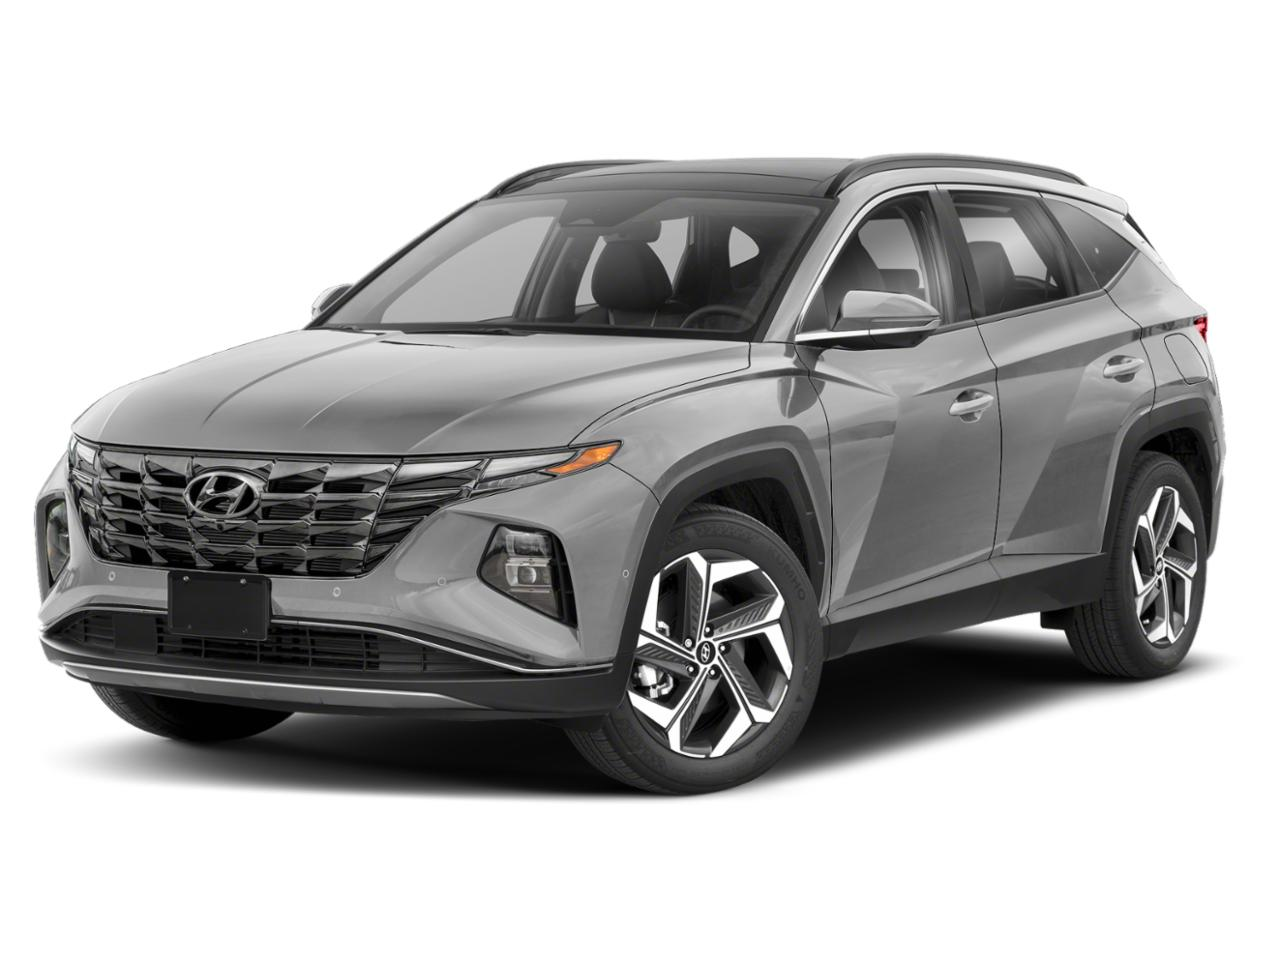 2022 Hyundai Tucson Vehicle Photo in O'Fallon, IL 62269